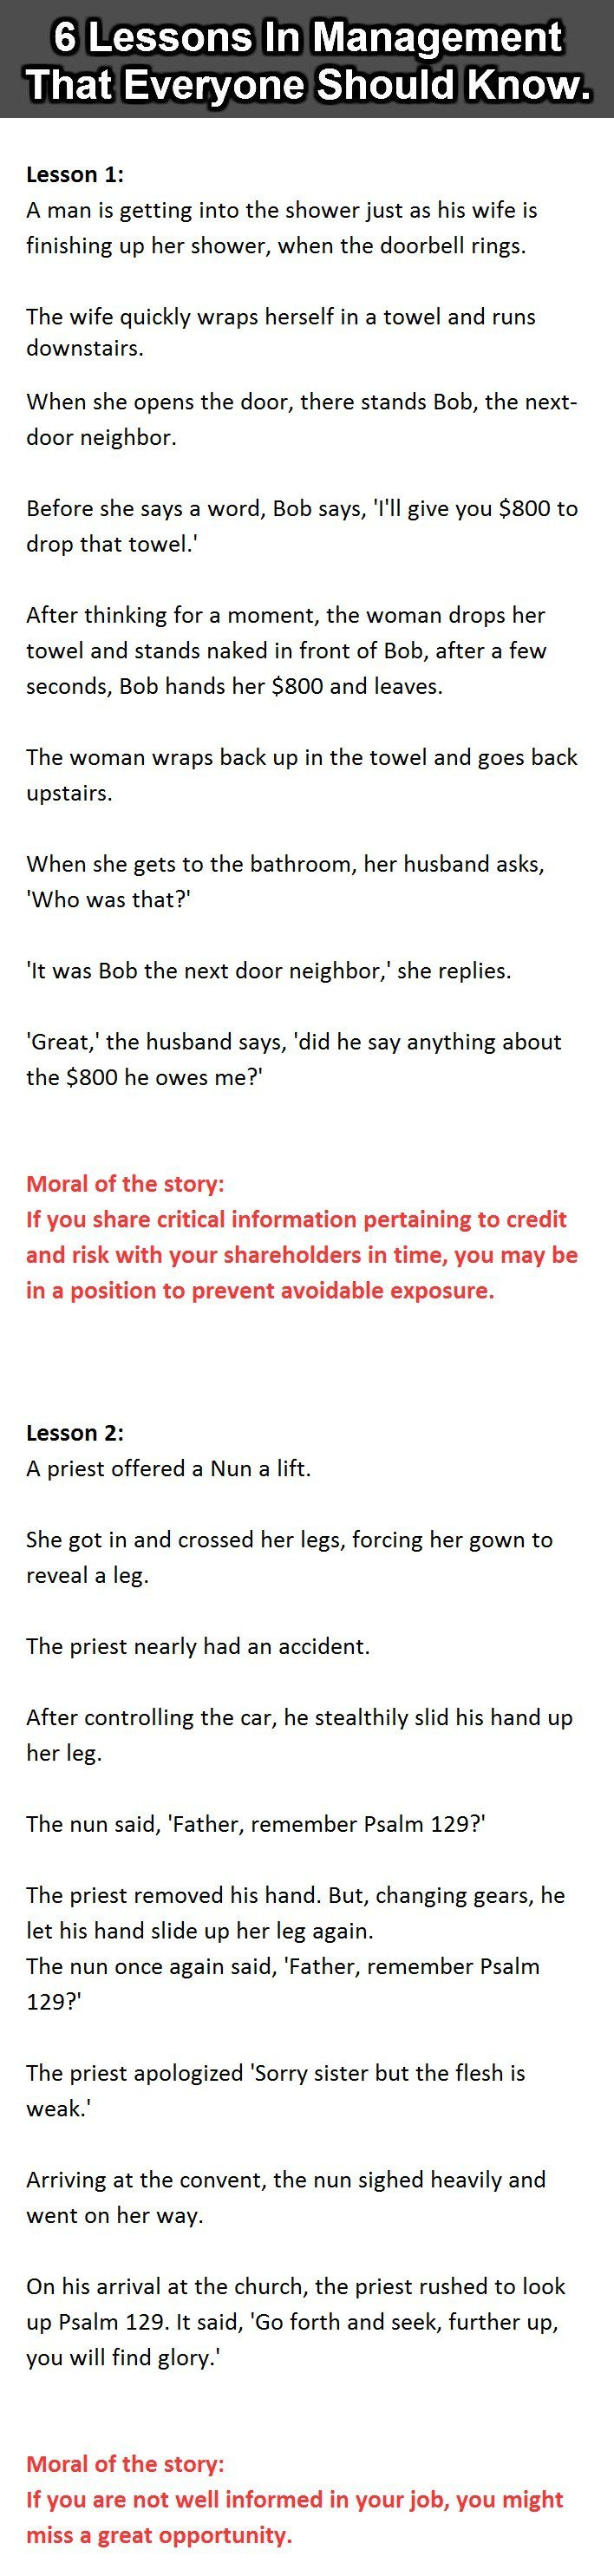 A List Of Fables And Their Morals 6 management lessons that everyone should know. #2 is